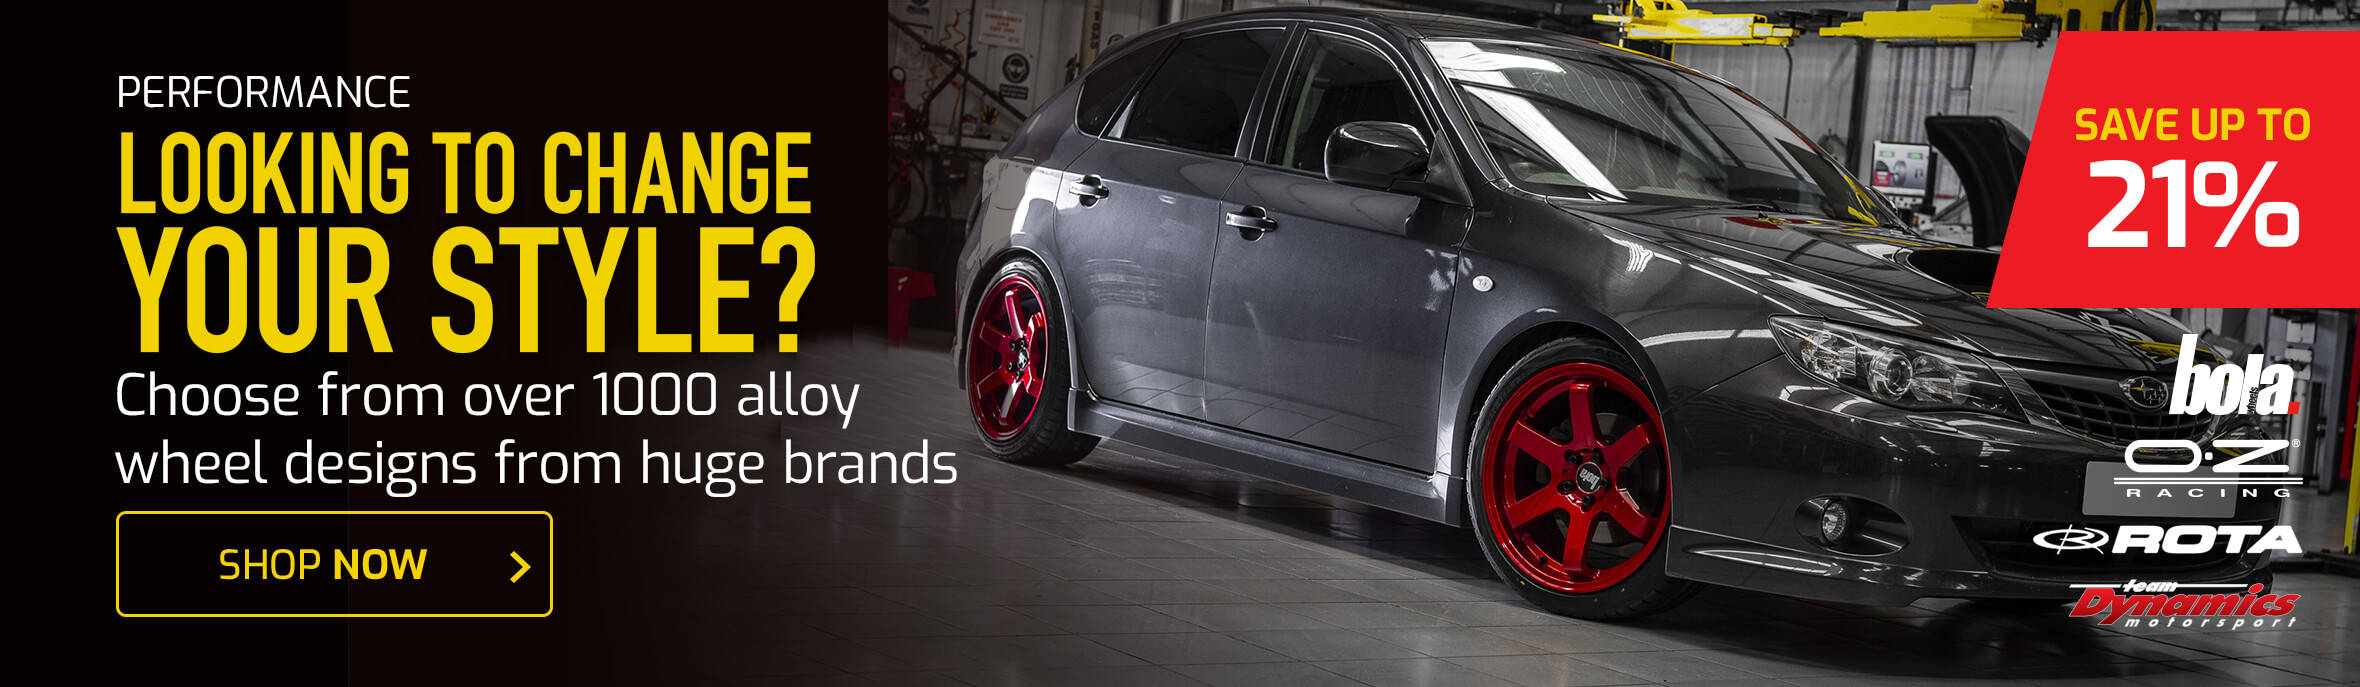 Over 1000 Alloy Wheel Designs to Choose from!